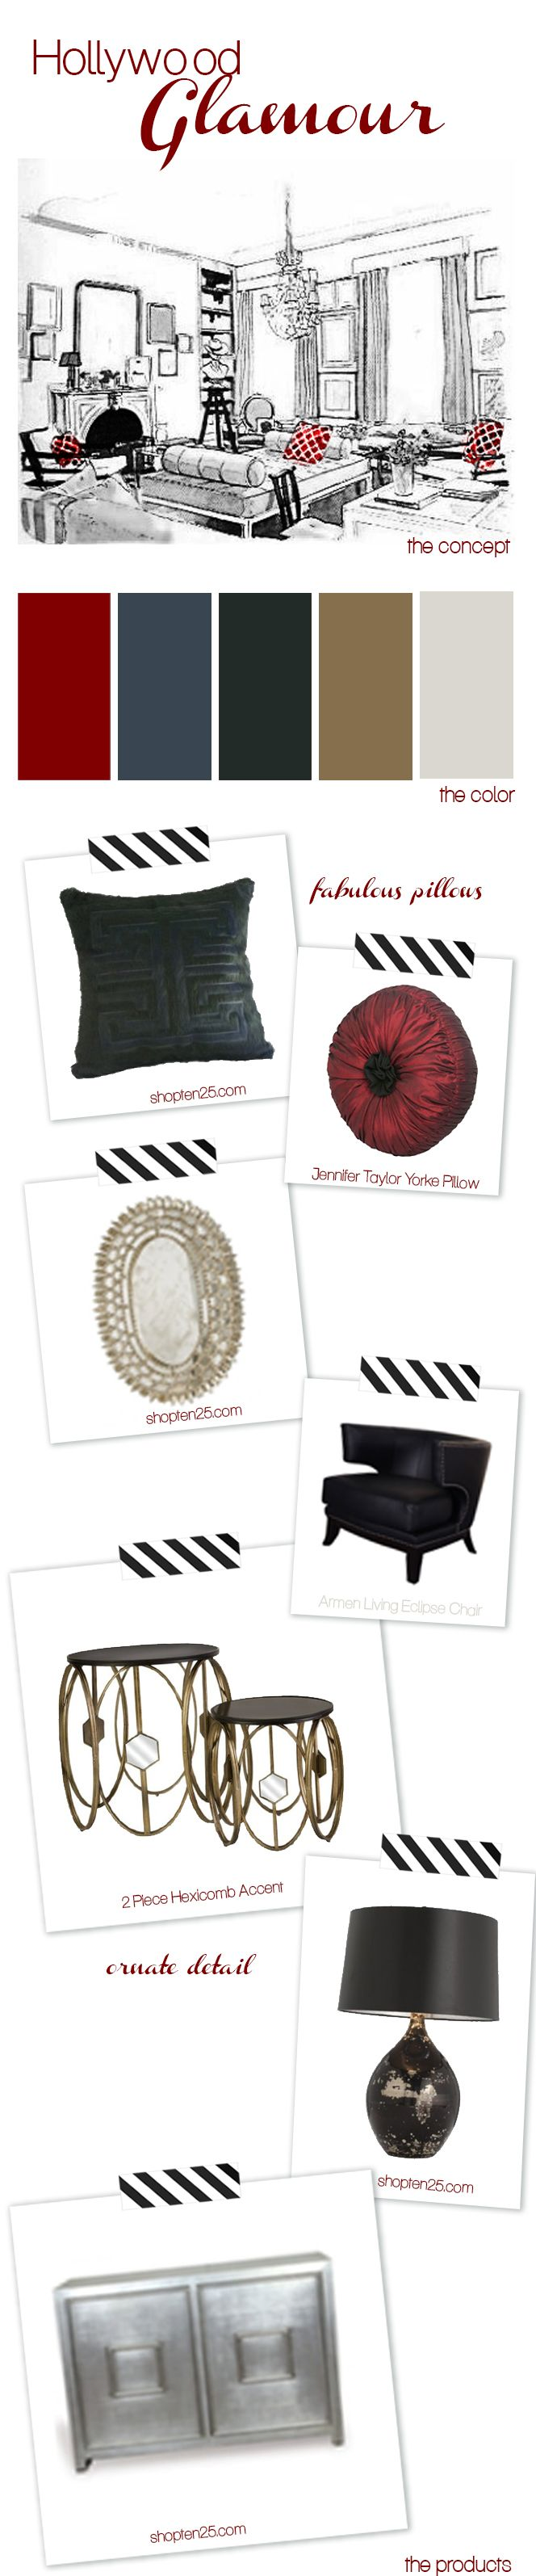 68 best Movie Themed Decor images on Pinterest | Movie theater, Home ...